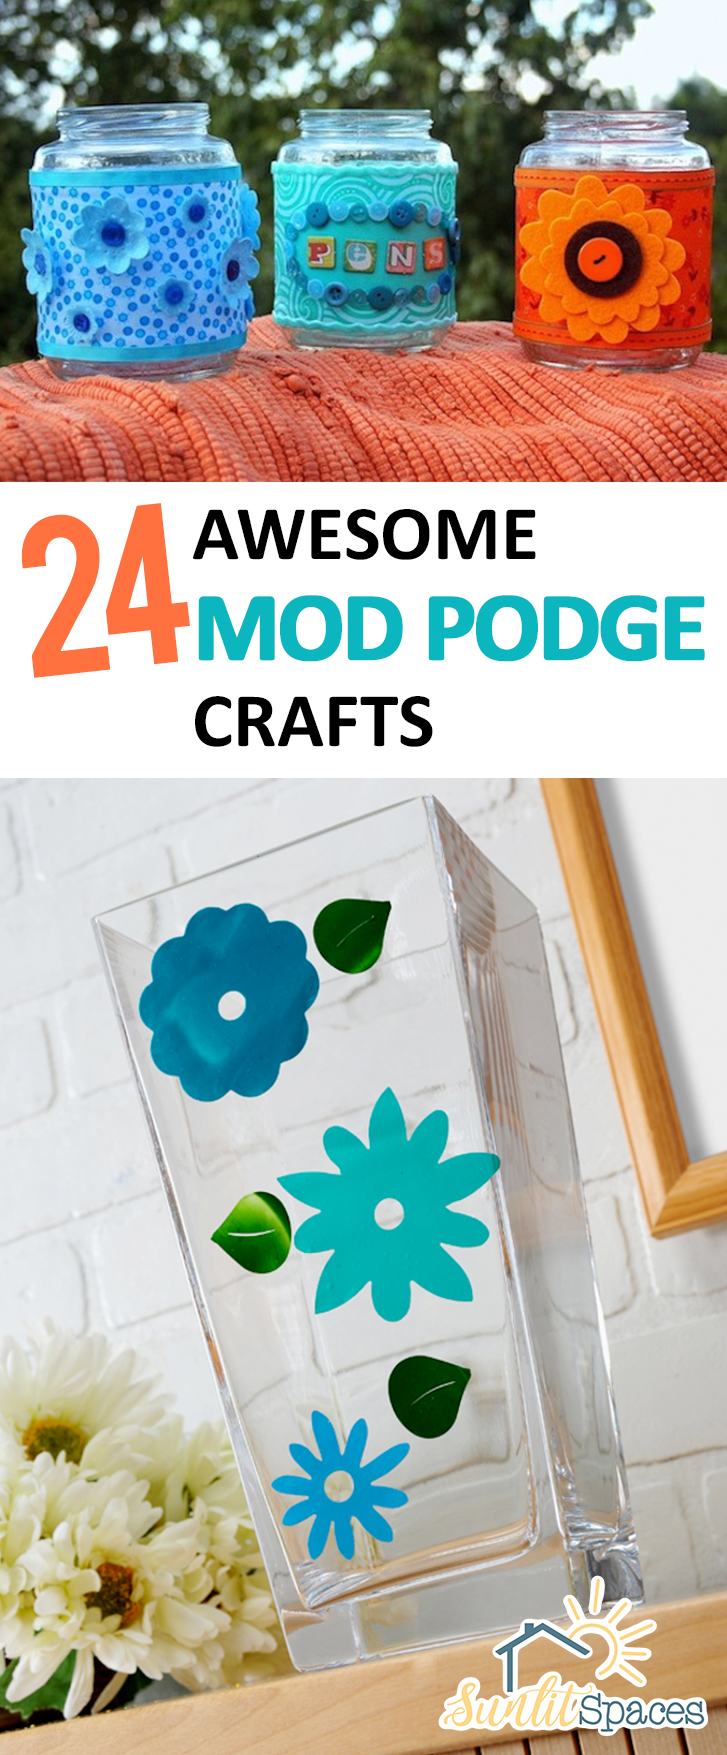 24 awesome mod podge crafts